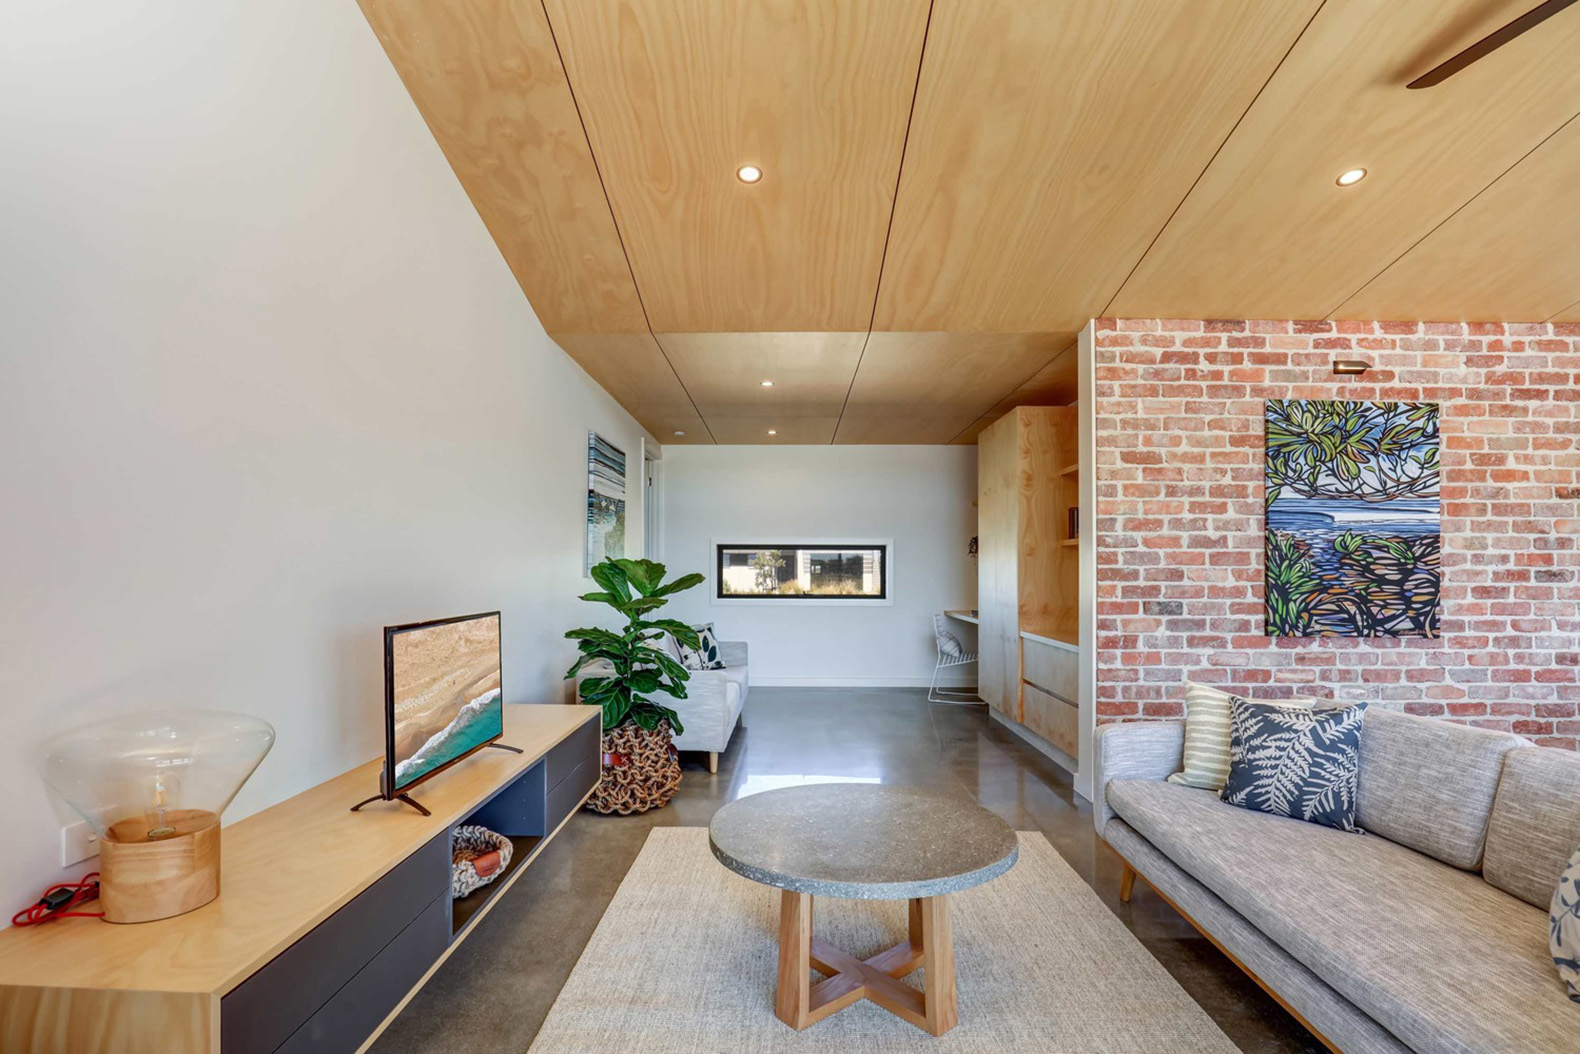 The Affordable, Carbon-positive CORE 9 House Can Generate